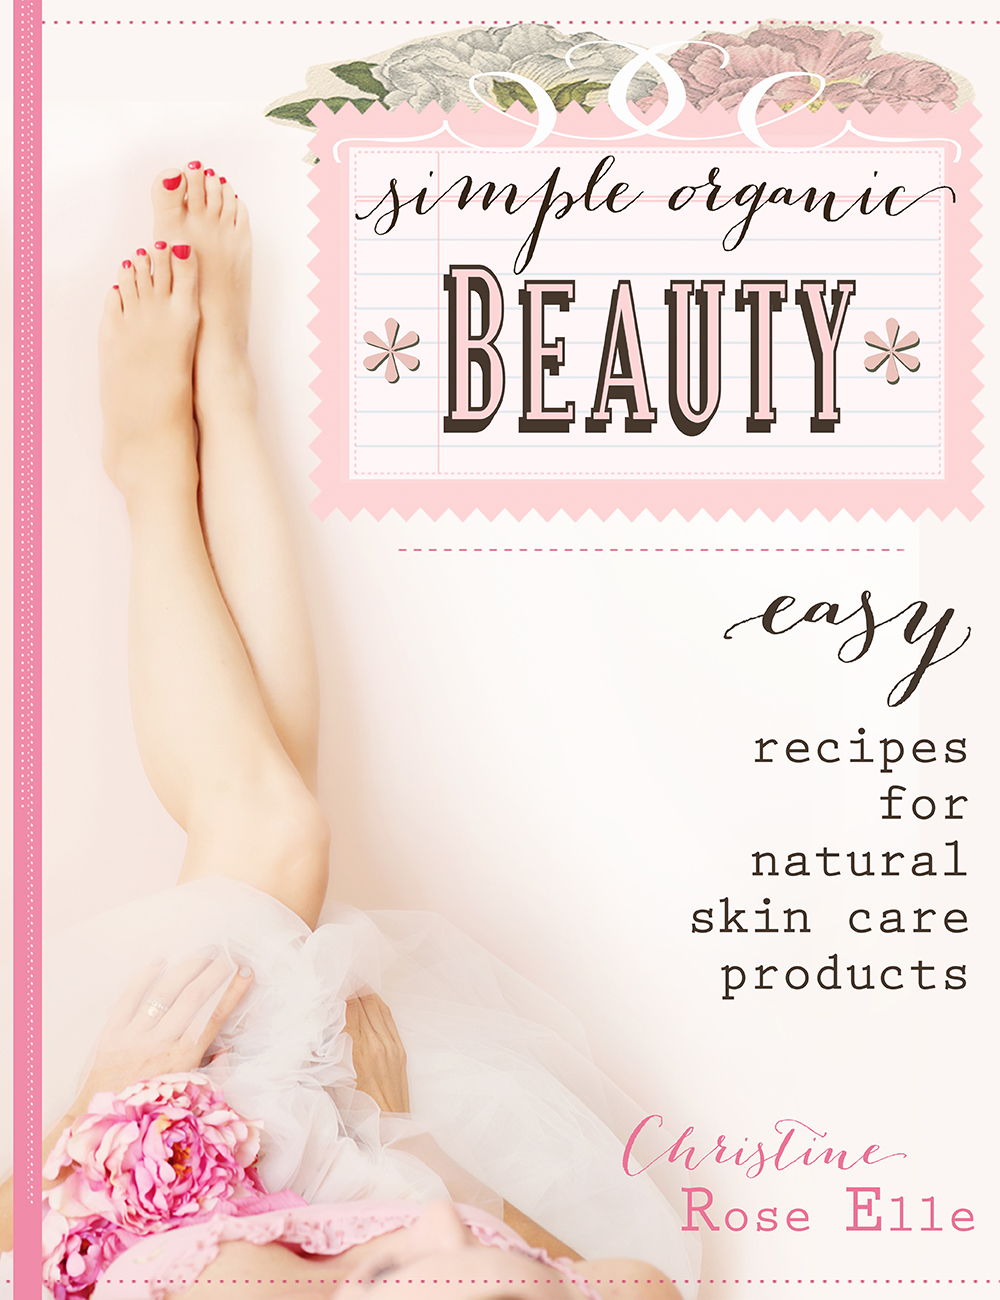 72 Simple Organic BeautySample low res sized finalcover pink sig